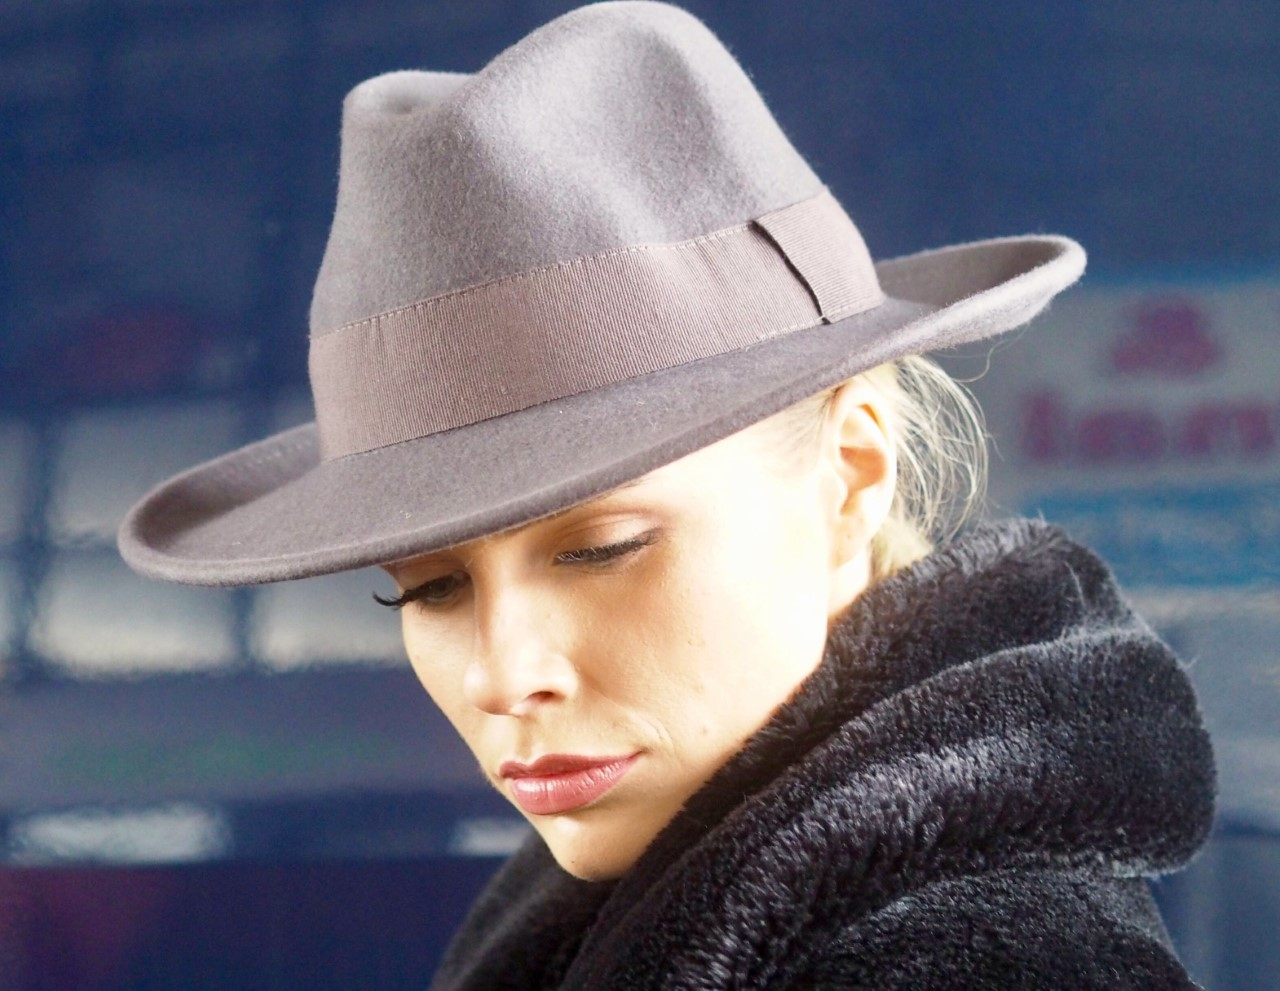 e6bc86e78a694d Bespoke Hats at Mu Du London — Lady Wimbledon